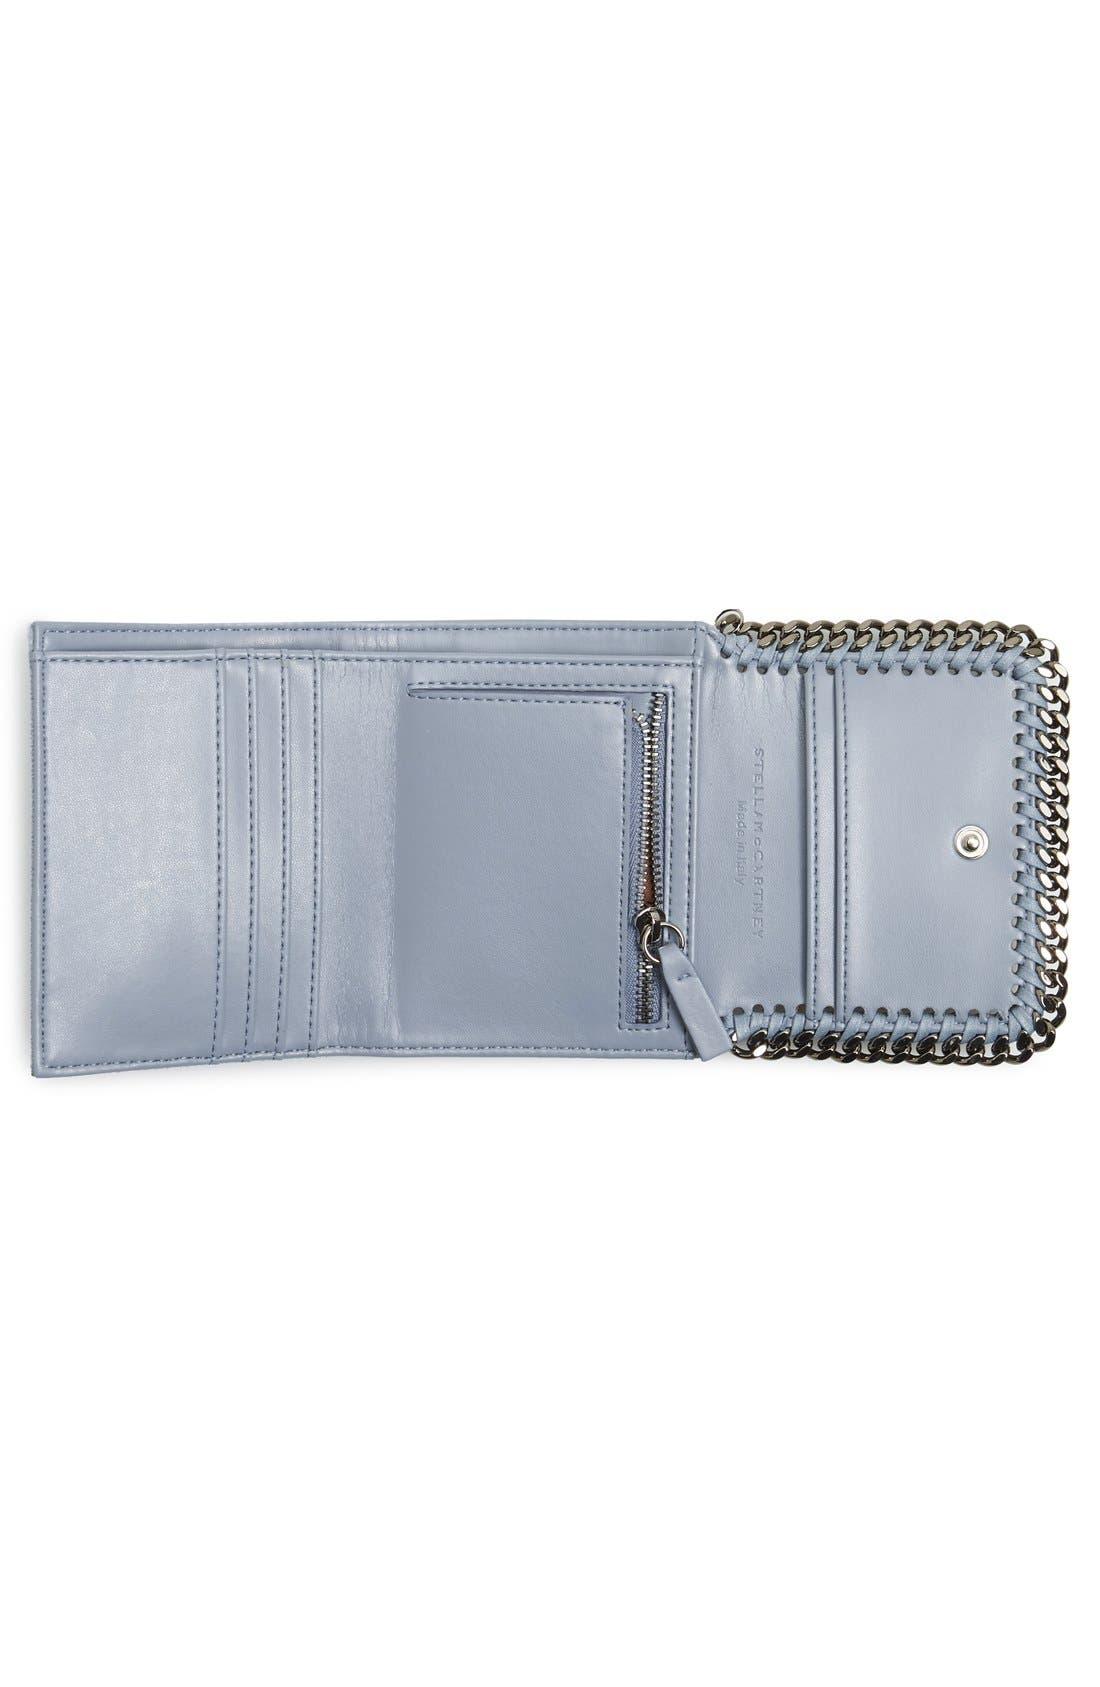 Alternate Image 3  - Stella McCartney 'Small Falabella' Faux Leather French Wallet